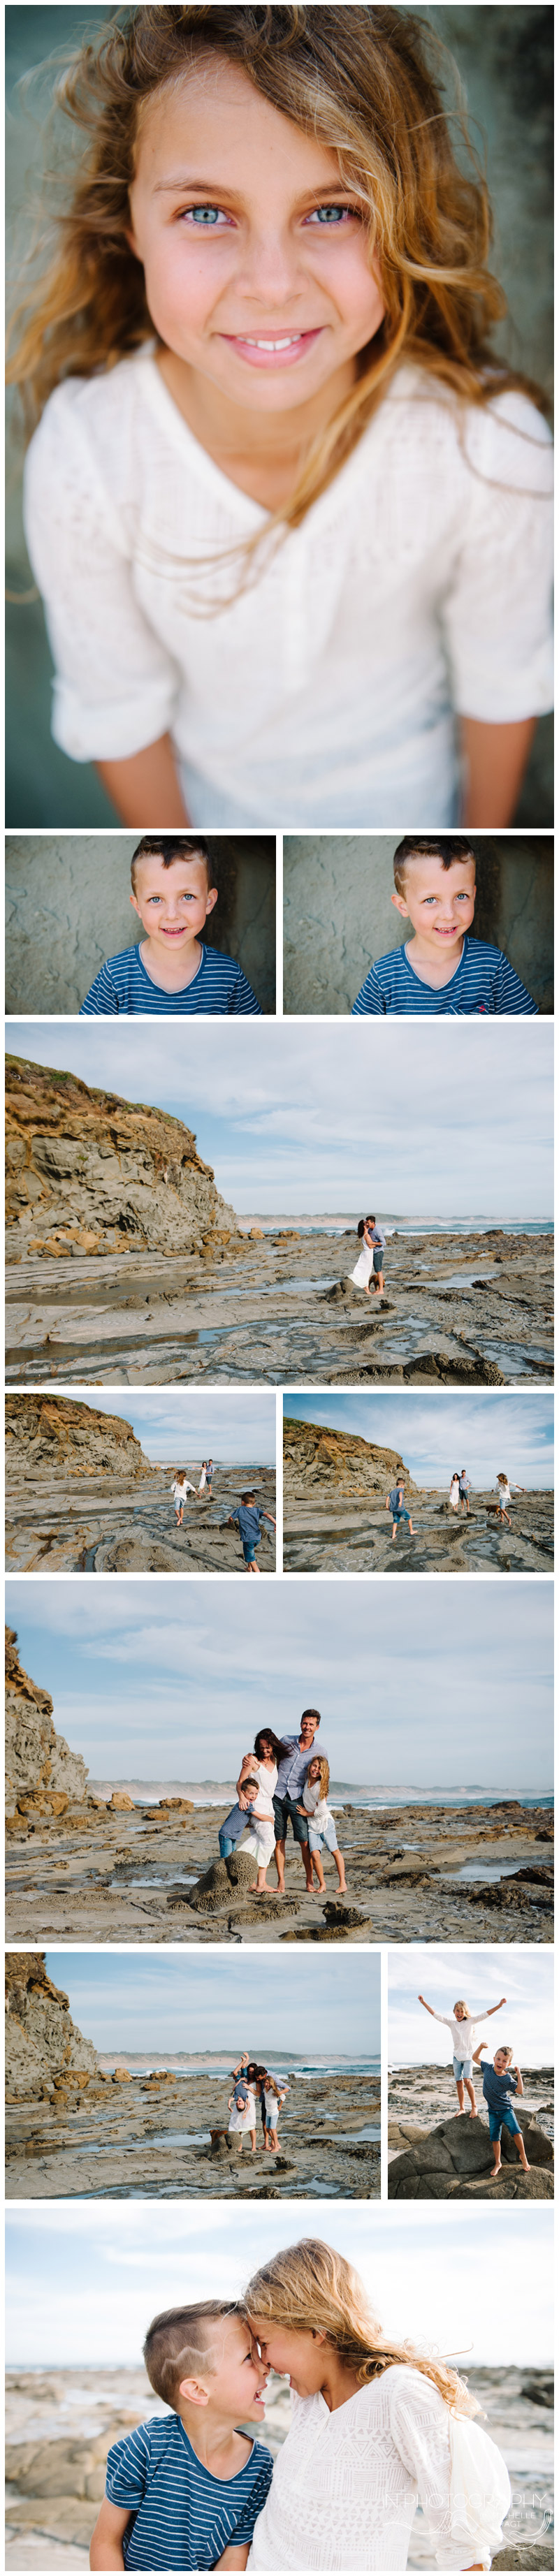 family photography on the Mornington peninsula